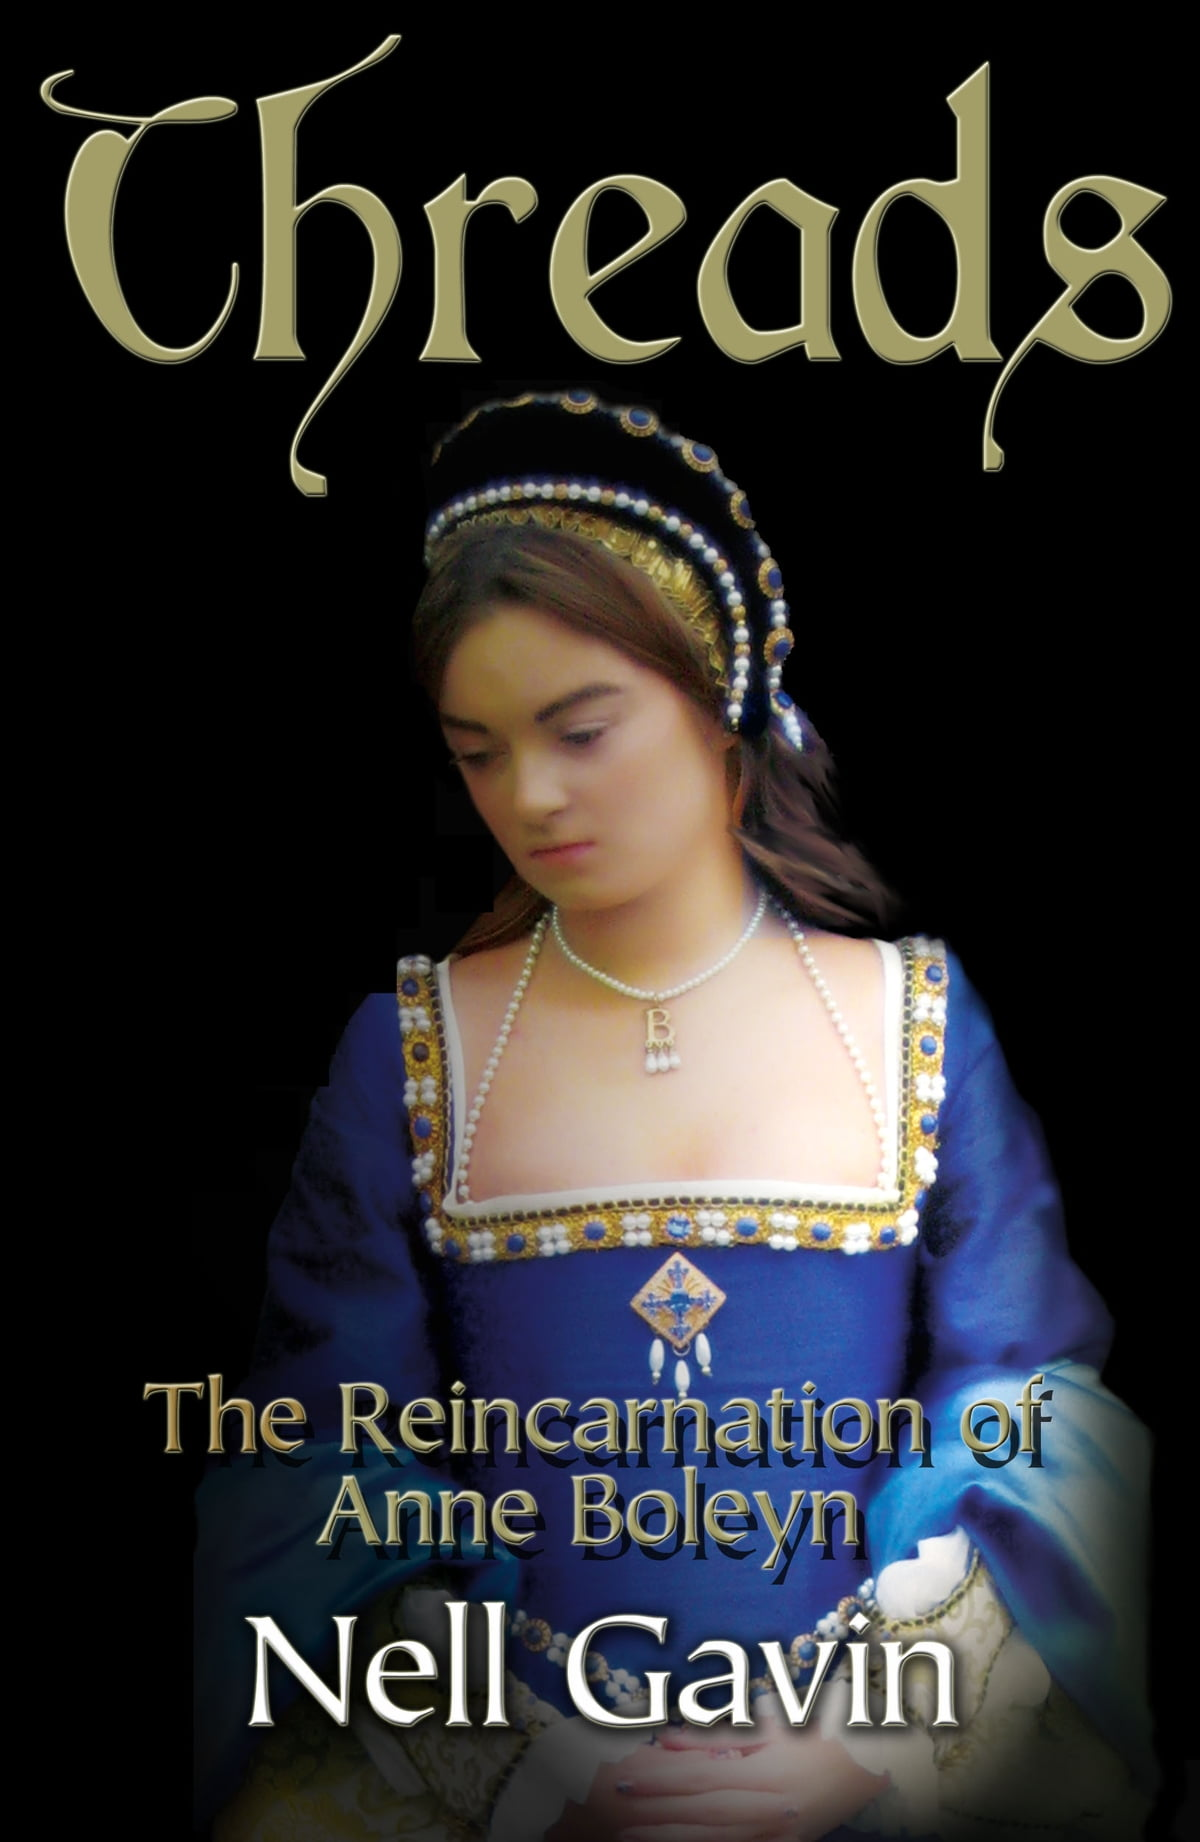 Image result for Threads: The Reincarnation of Anne Boleyn